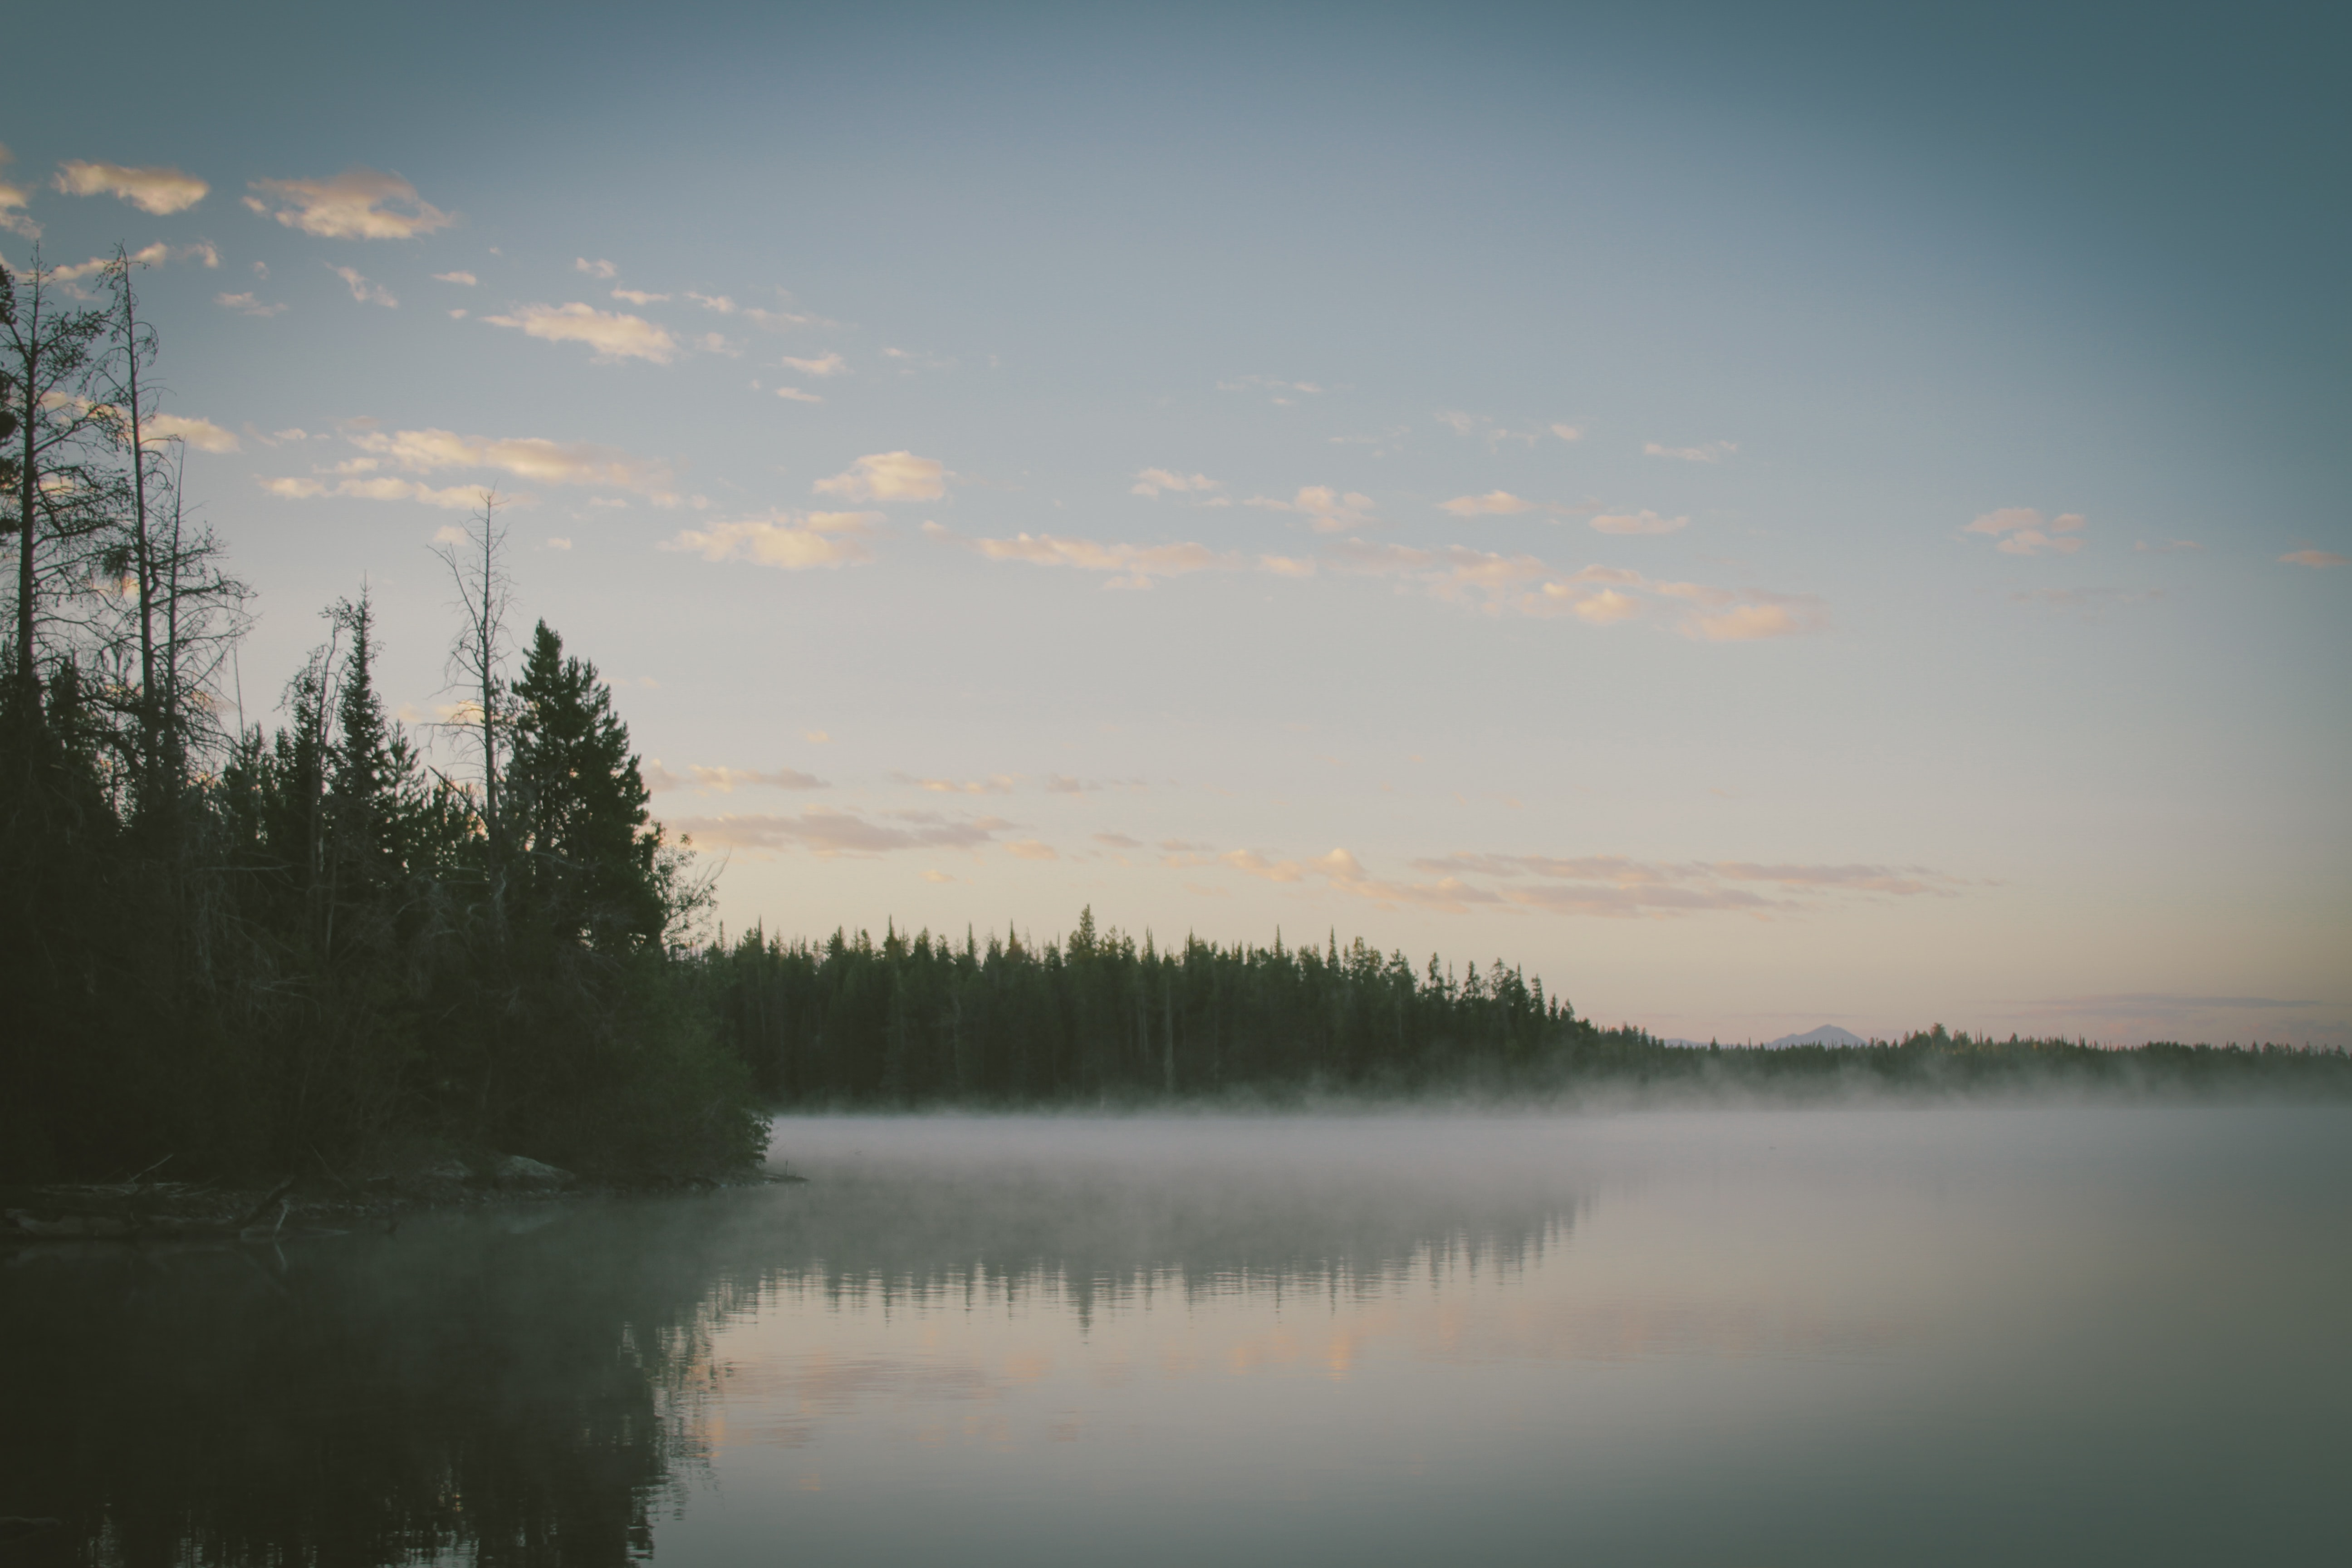 Fog hovering above the clear surface of a lake on a quiet evening